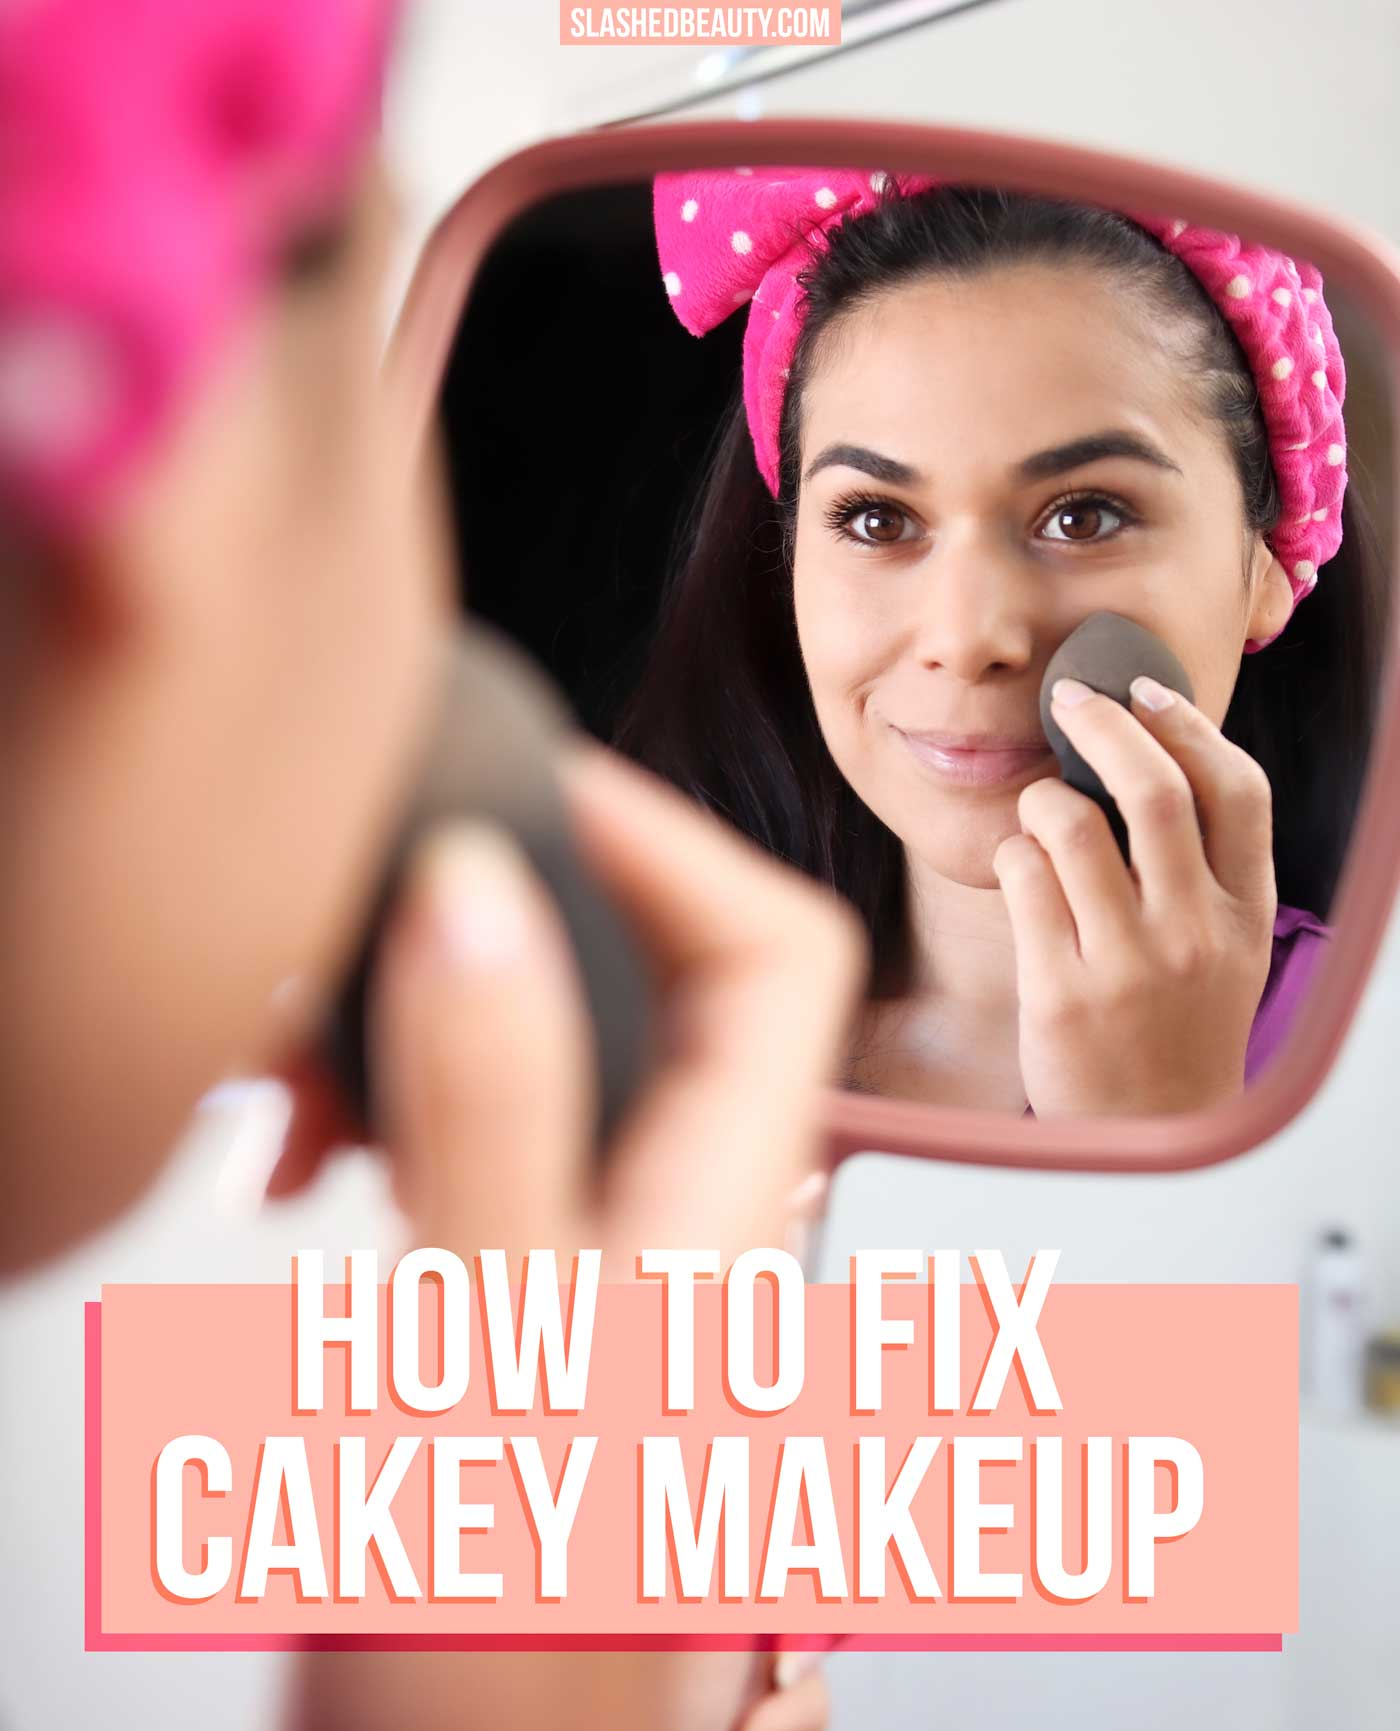 5 Reasons Why Your Makeup Looks Cakey & How to Fix It | How to Make Makeup Not Cakey | Makeup Tips | Slashed Beauty